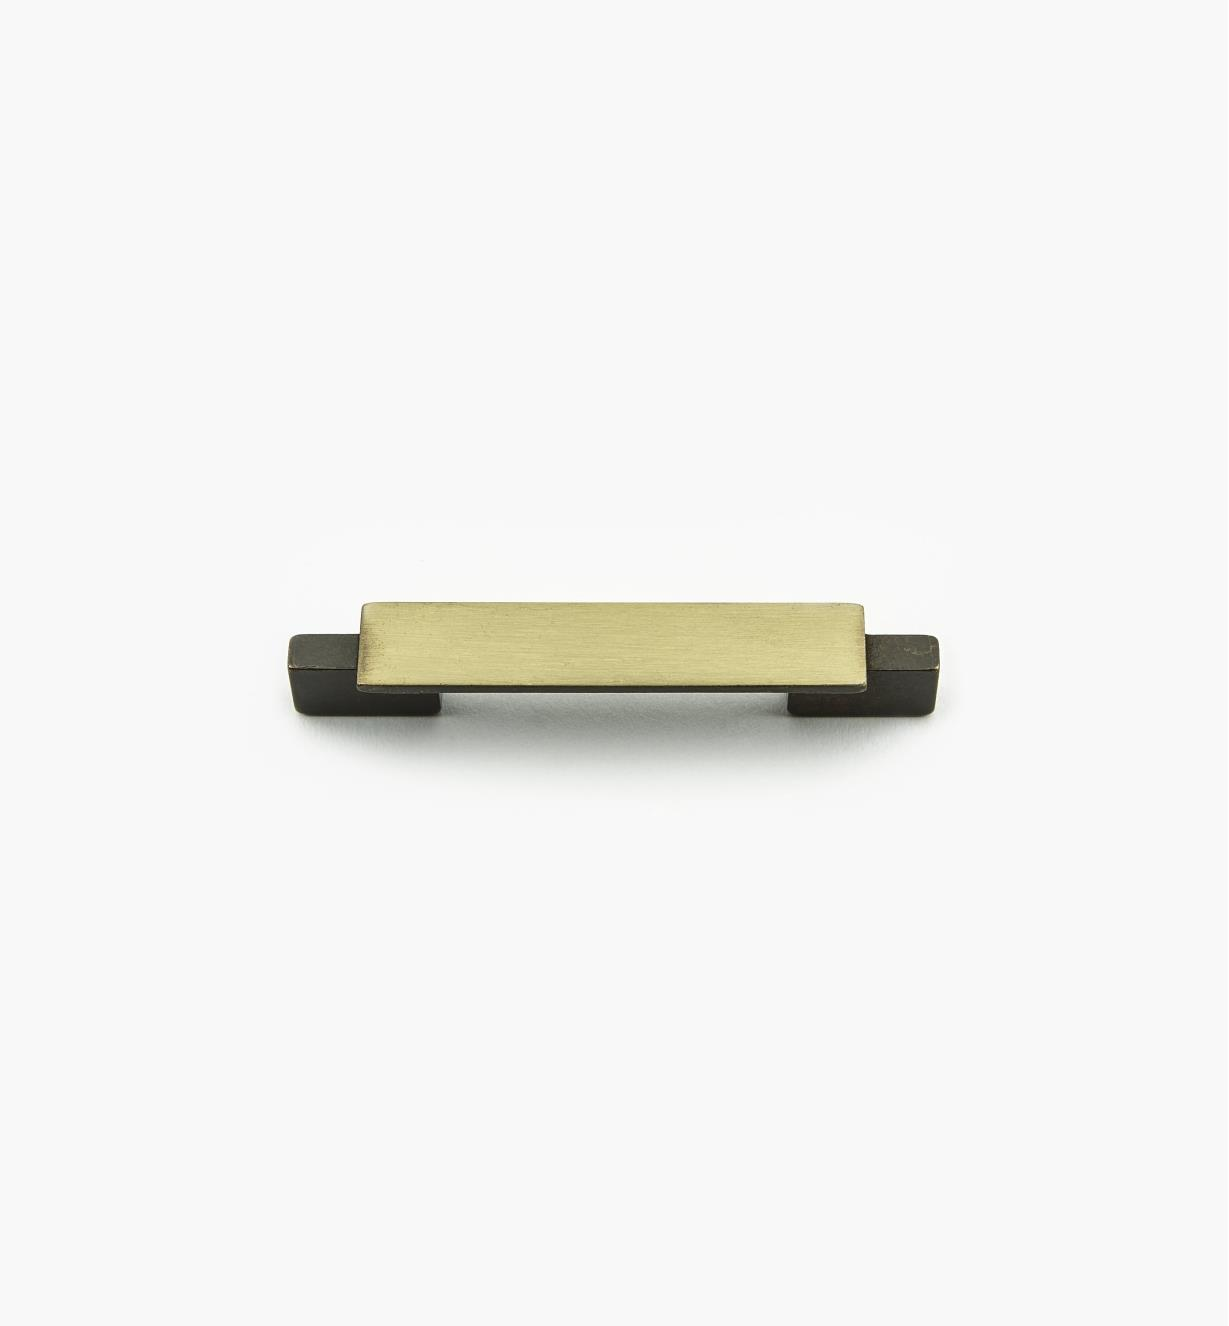 01G1853 - Bridge Hardware - 64mm x 103mm Brushed Antique Brass Handle